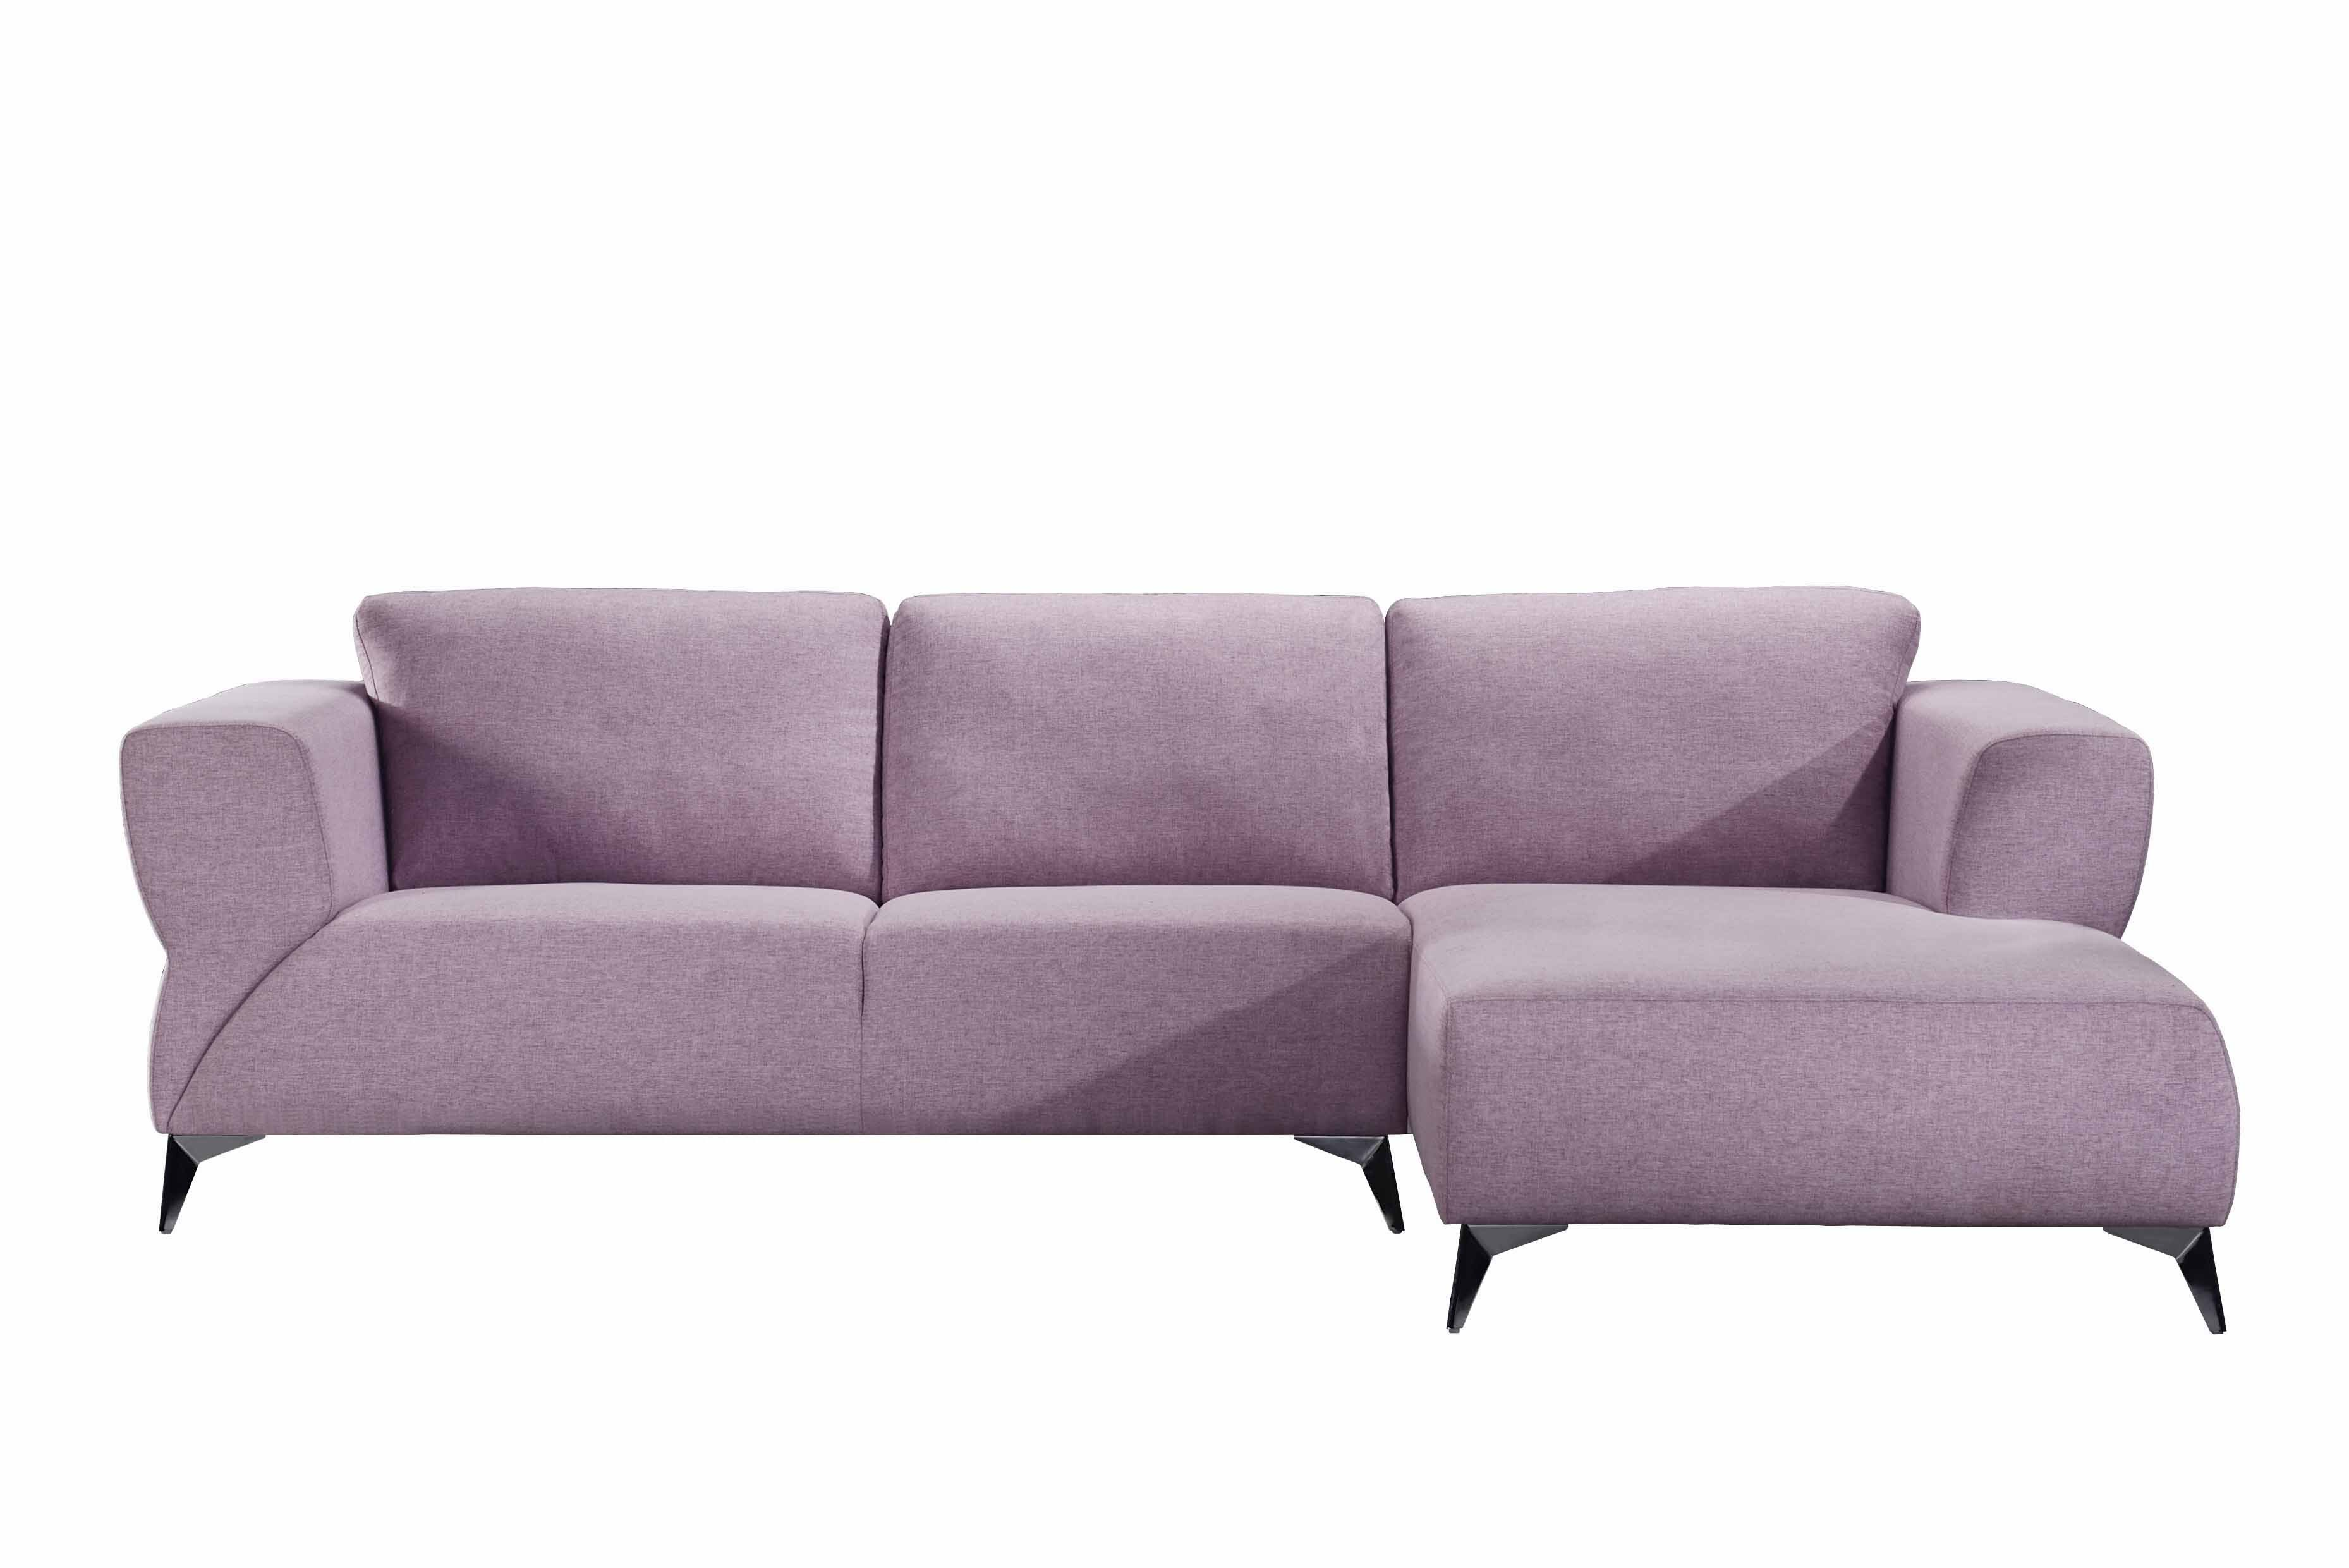 Pale Berries Sectional Sofa Front